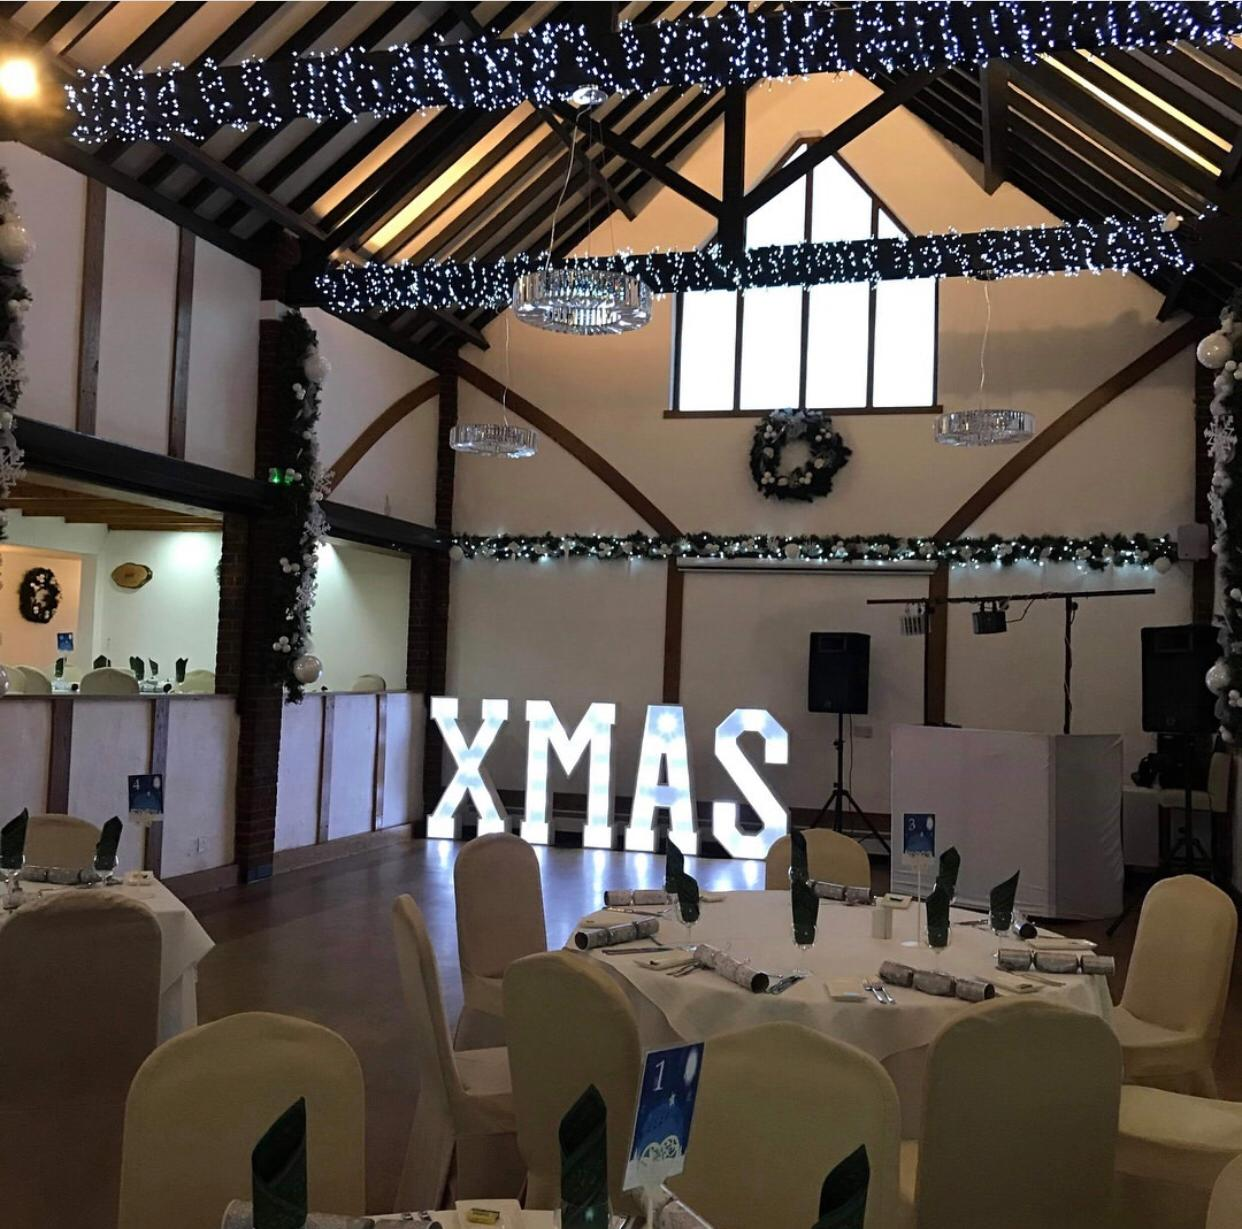 Occasions - Corporate Events & CelebrationsCelebrate success, the festive season or a momentous event for your business with our professional corporate events service and packages.